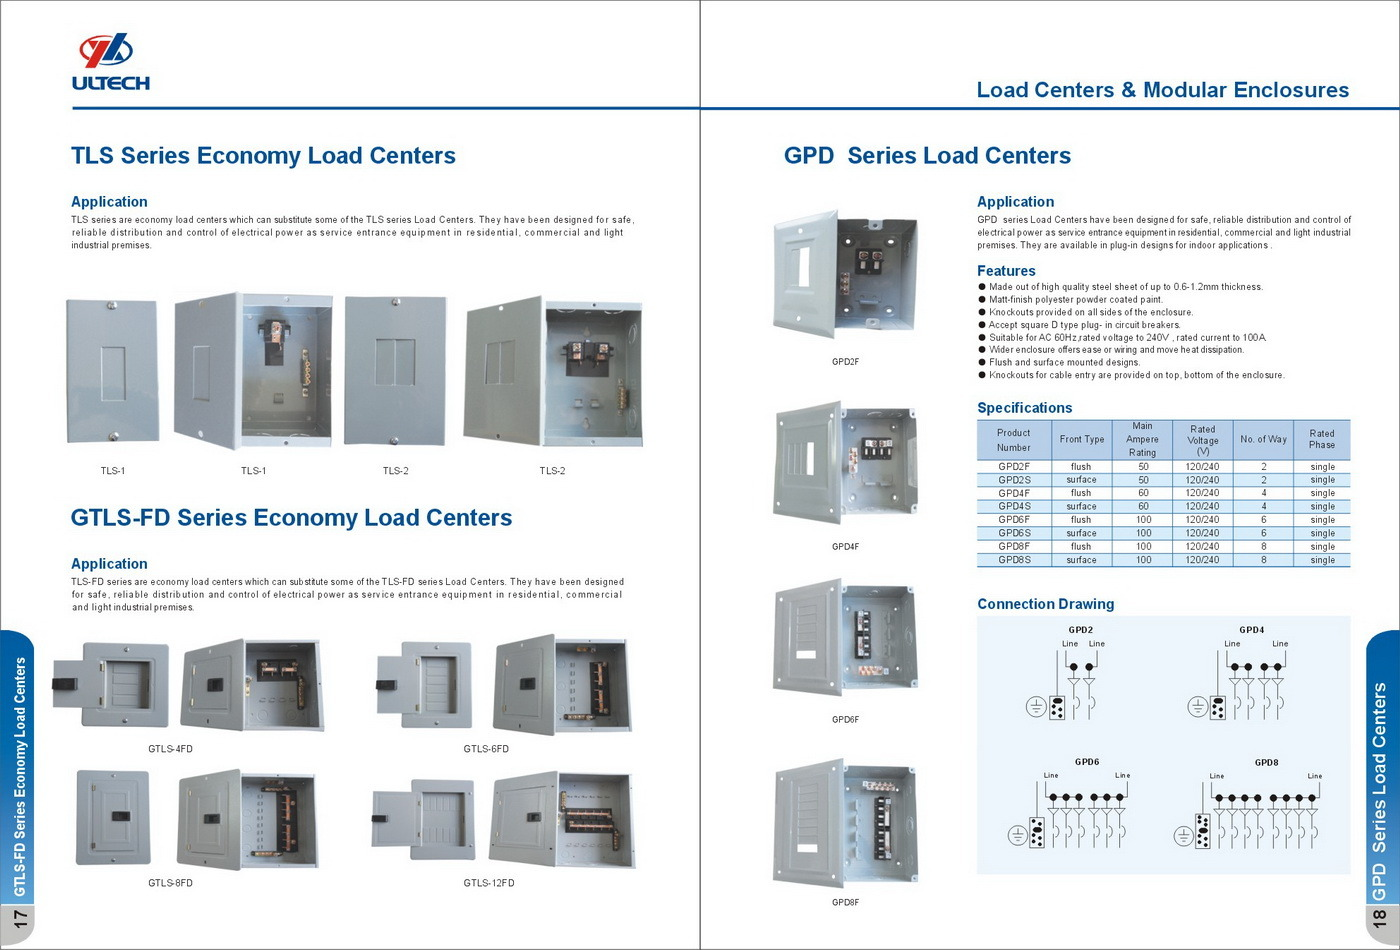 Gpd2f 2 Way Metal Electrical Control Panel Box China Commercial Service Entrance Wiring Diagram Knockouts For Cable Entry Are Provided On Top Bottom Of The Enclosure